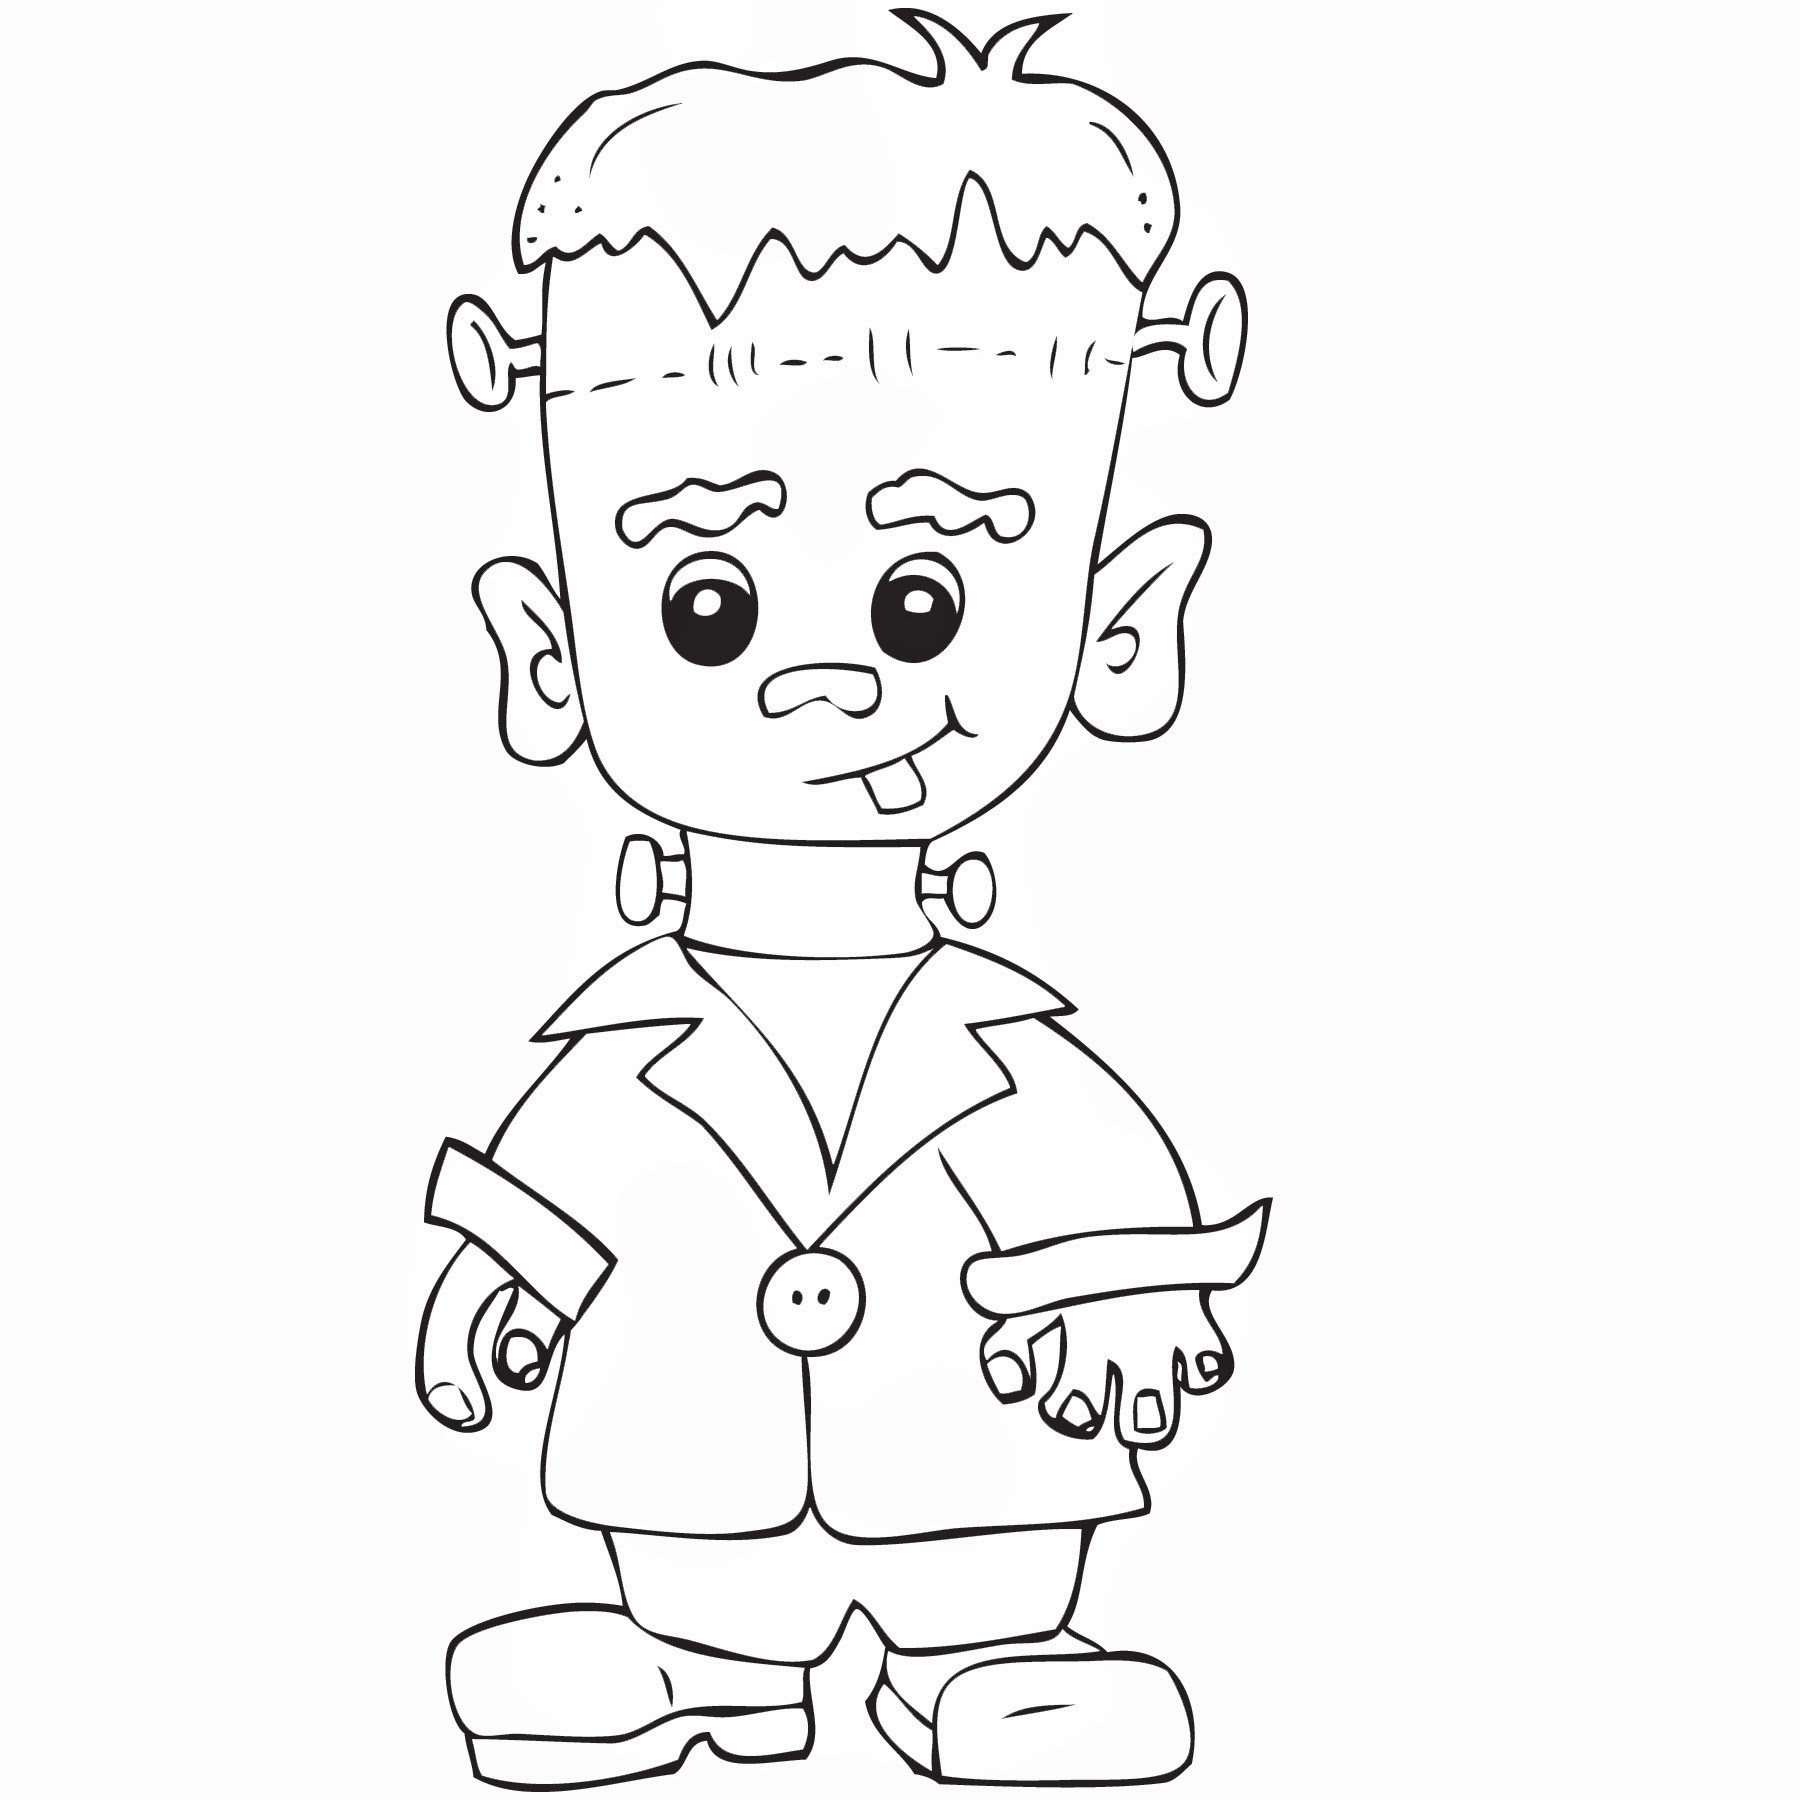 Frankenstein clipart black and white 5 » Clipart Station.